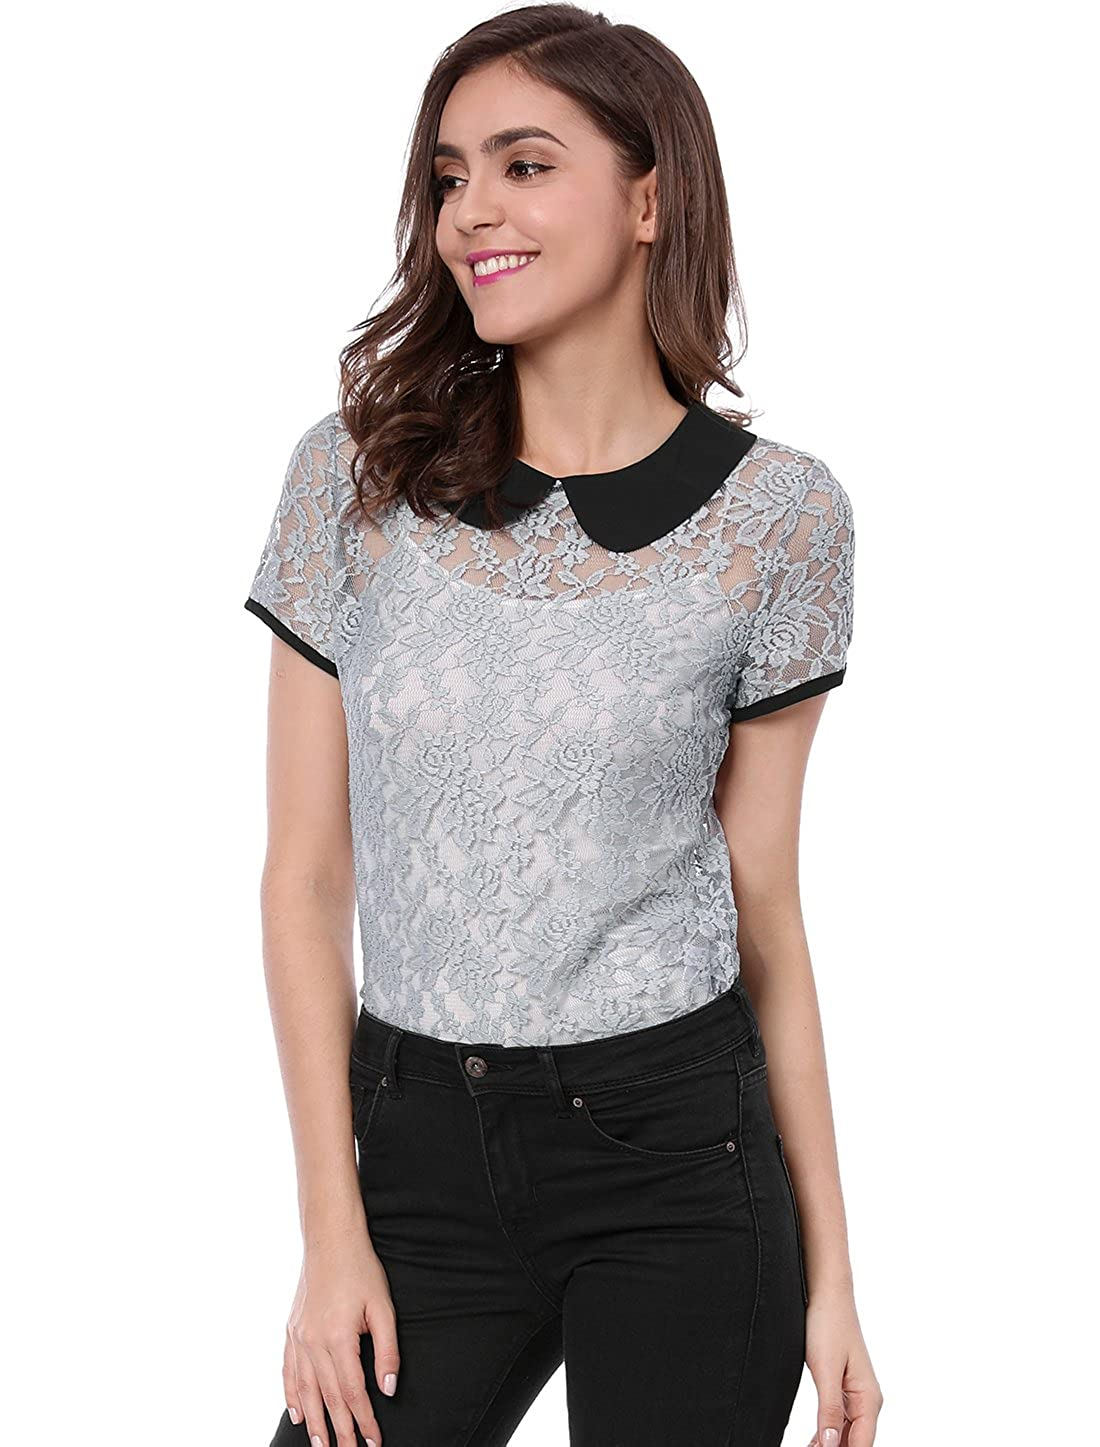 81128b2e84 Allegra K Women's See Through Contrast Peter Pan Collar Lace Top at Amazon  Women's Clothing store: